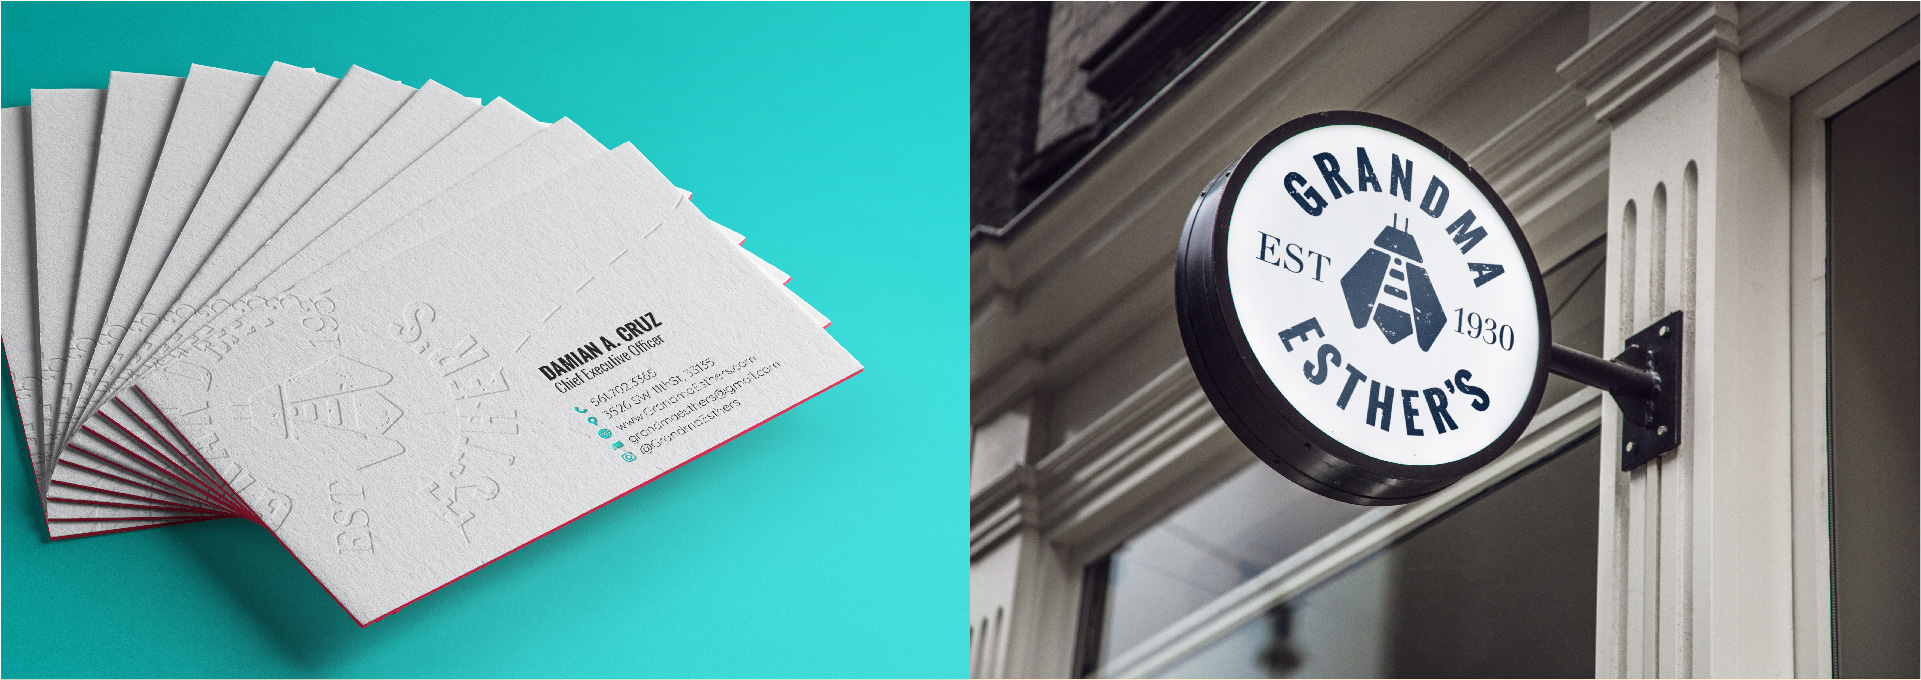 More Stationery Business Card design